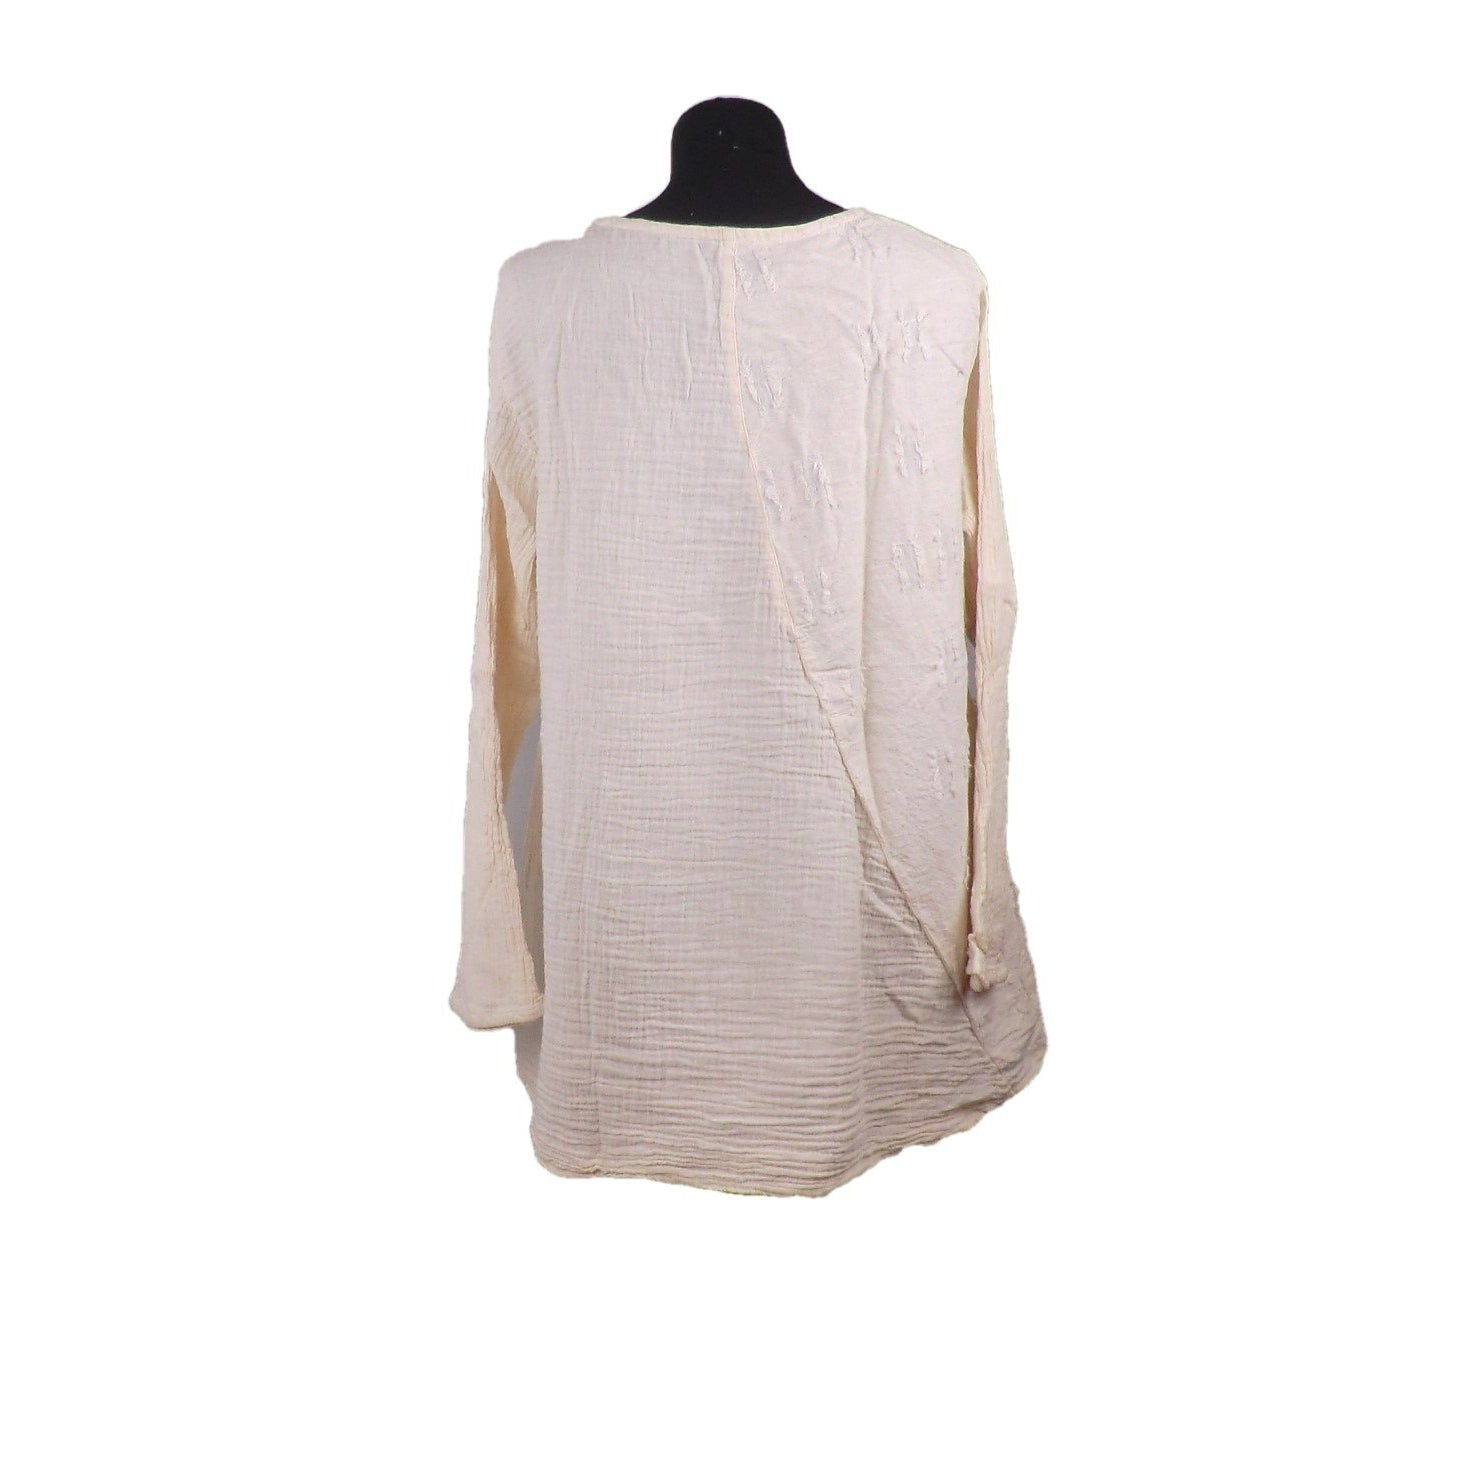 Long Sleeve Top - Matico